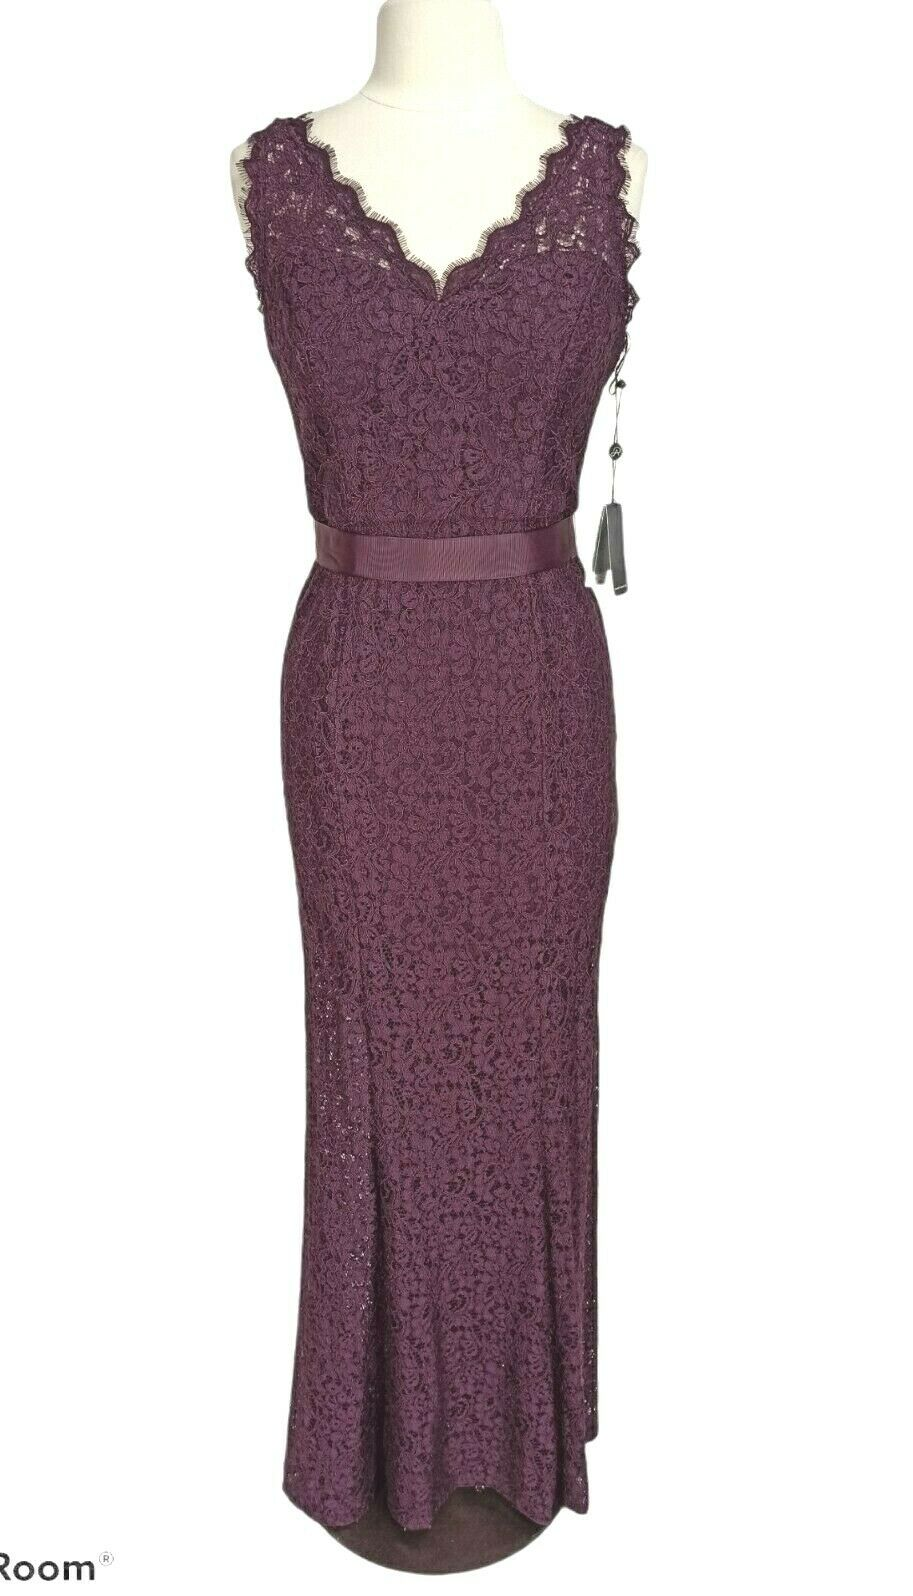 Adrianna Papell Burgundy Lace V-Neck Sleeveless Gown Maxi Mermaid Dress Size 10